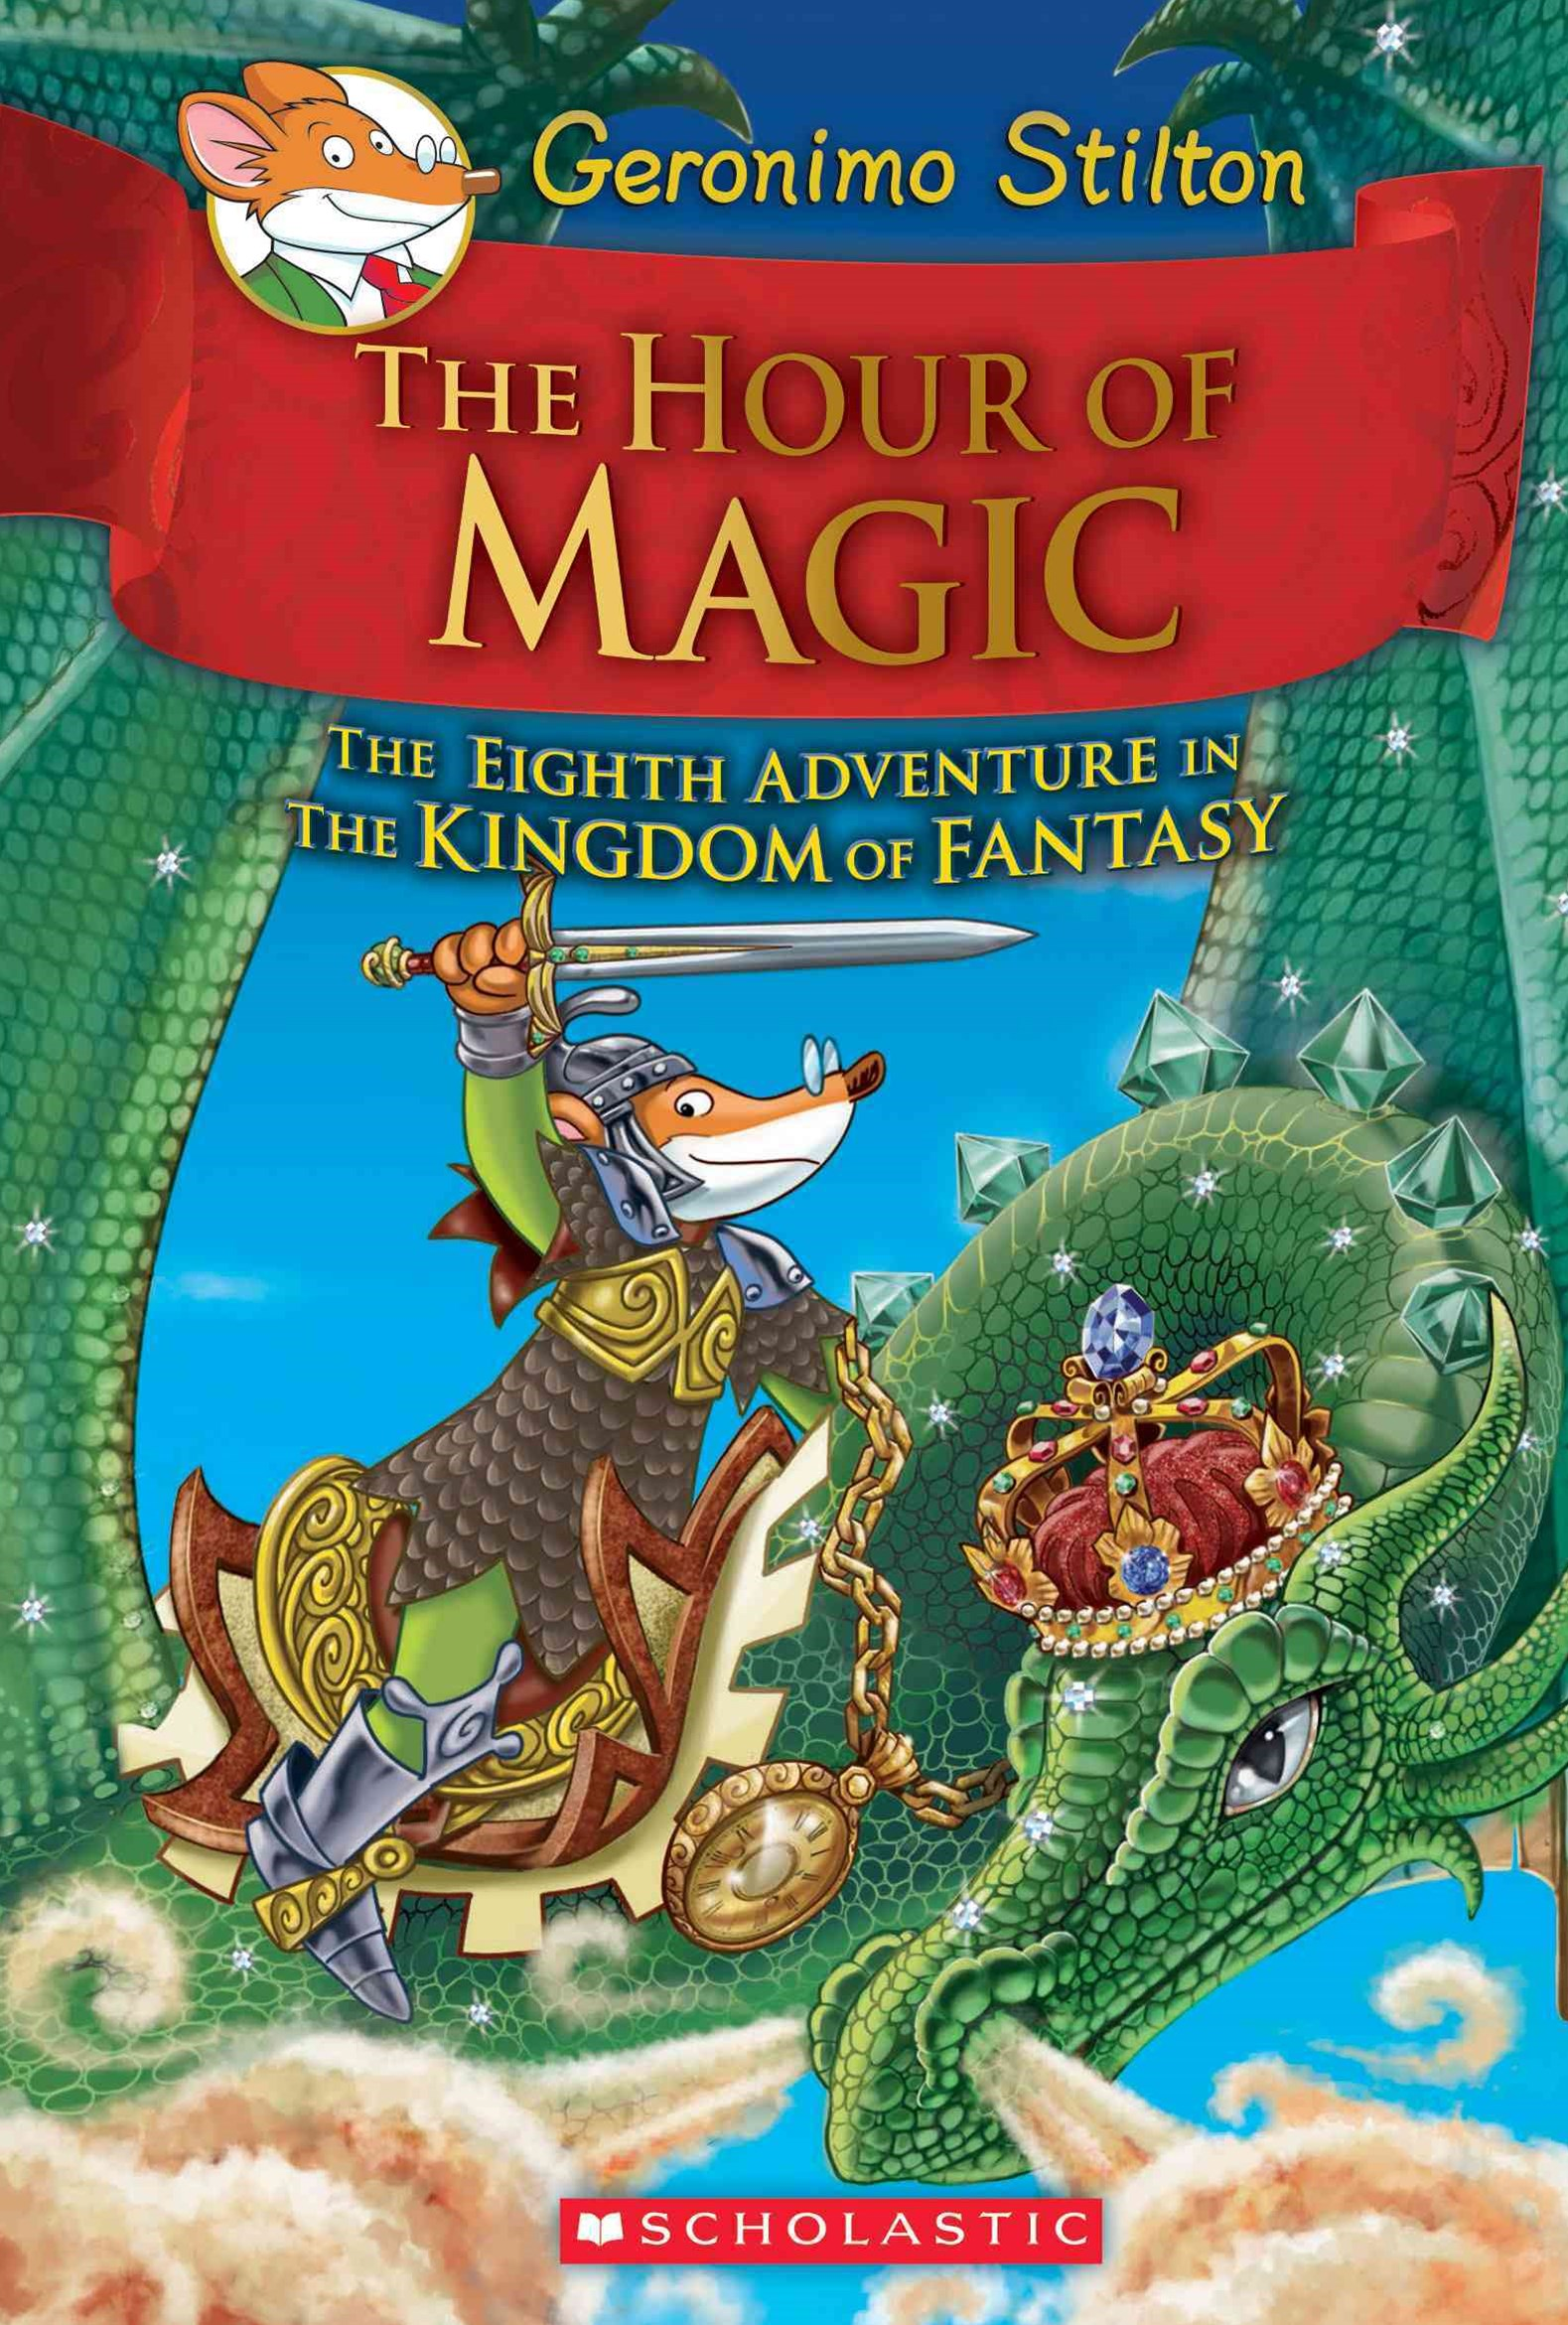 Geronimo Stilton Kingdom of Fantasy: #8 The Hour of Magic